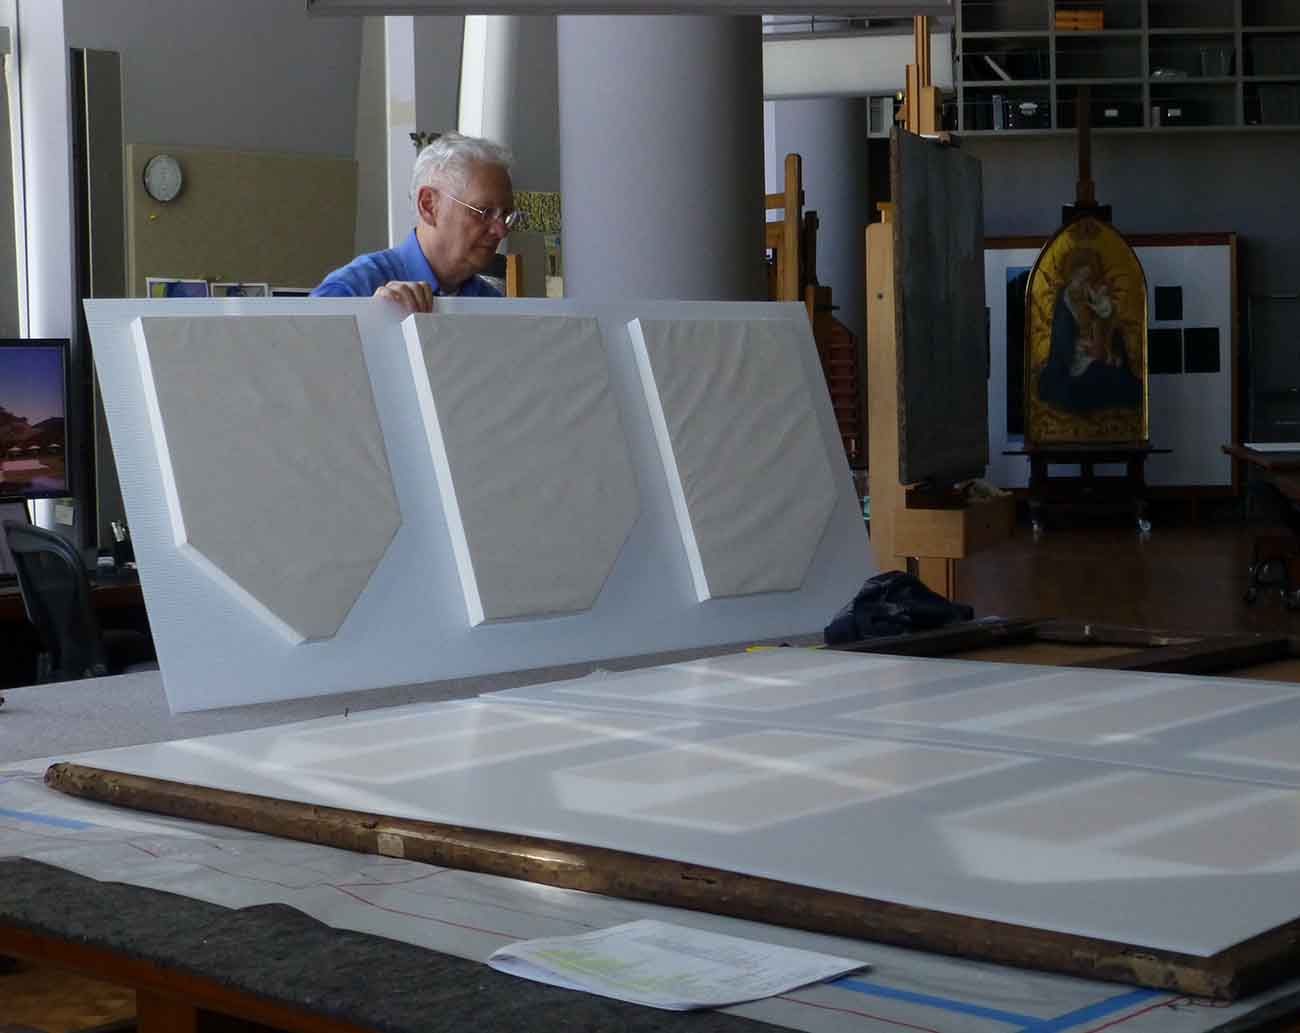 Gene Karraker, frame conservator, preparing the protective inserts which will reduce movement when cleaning the painting.